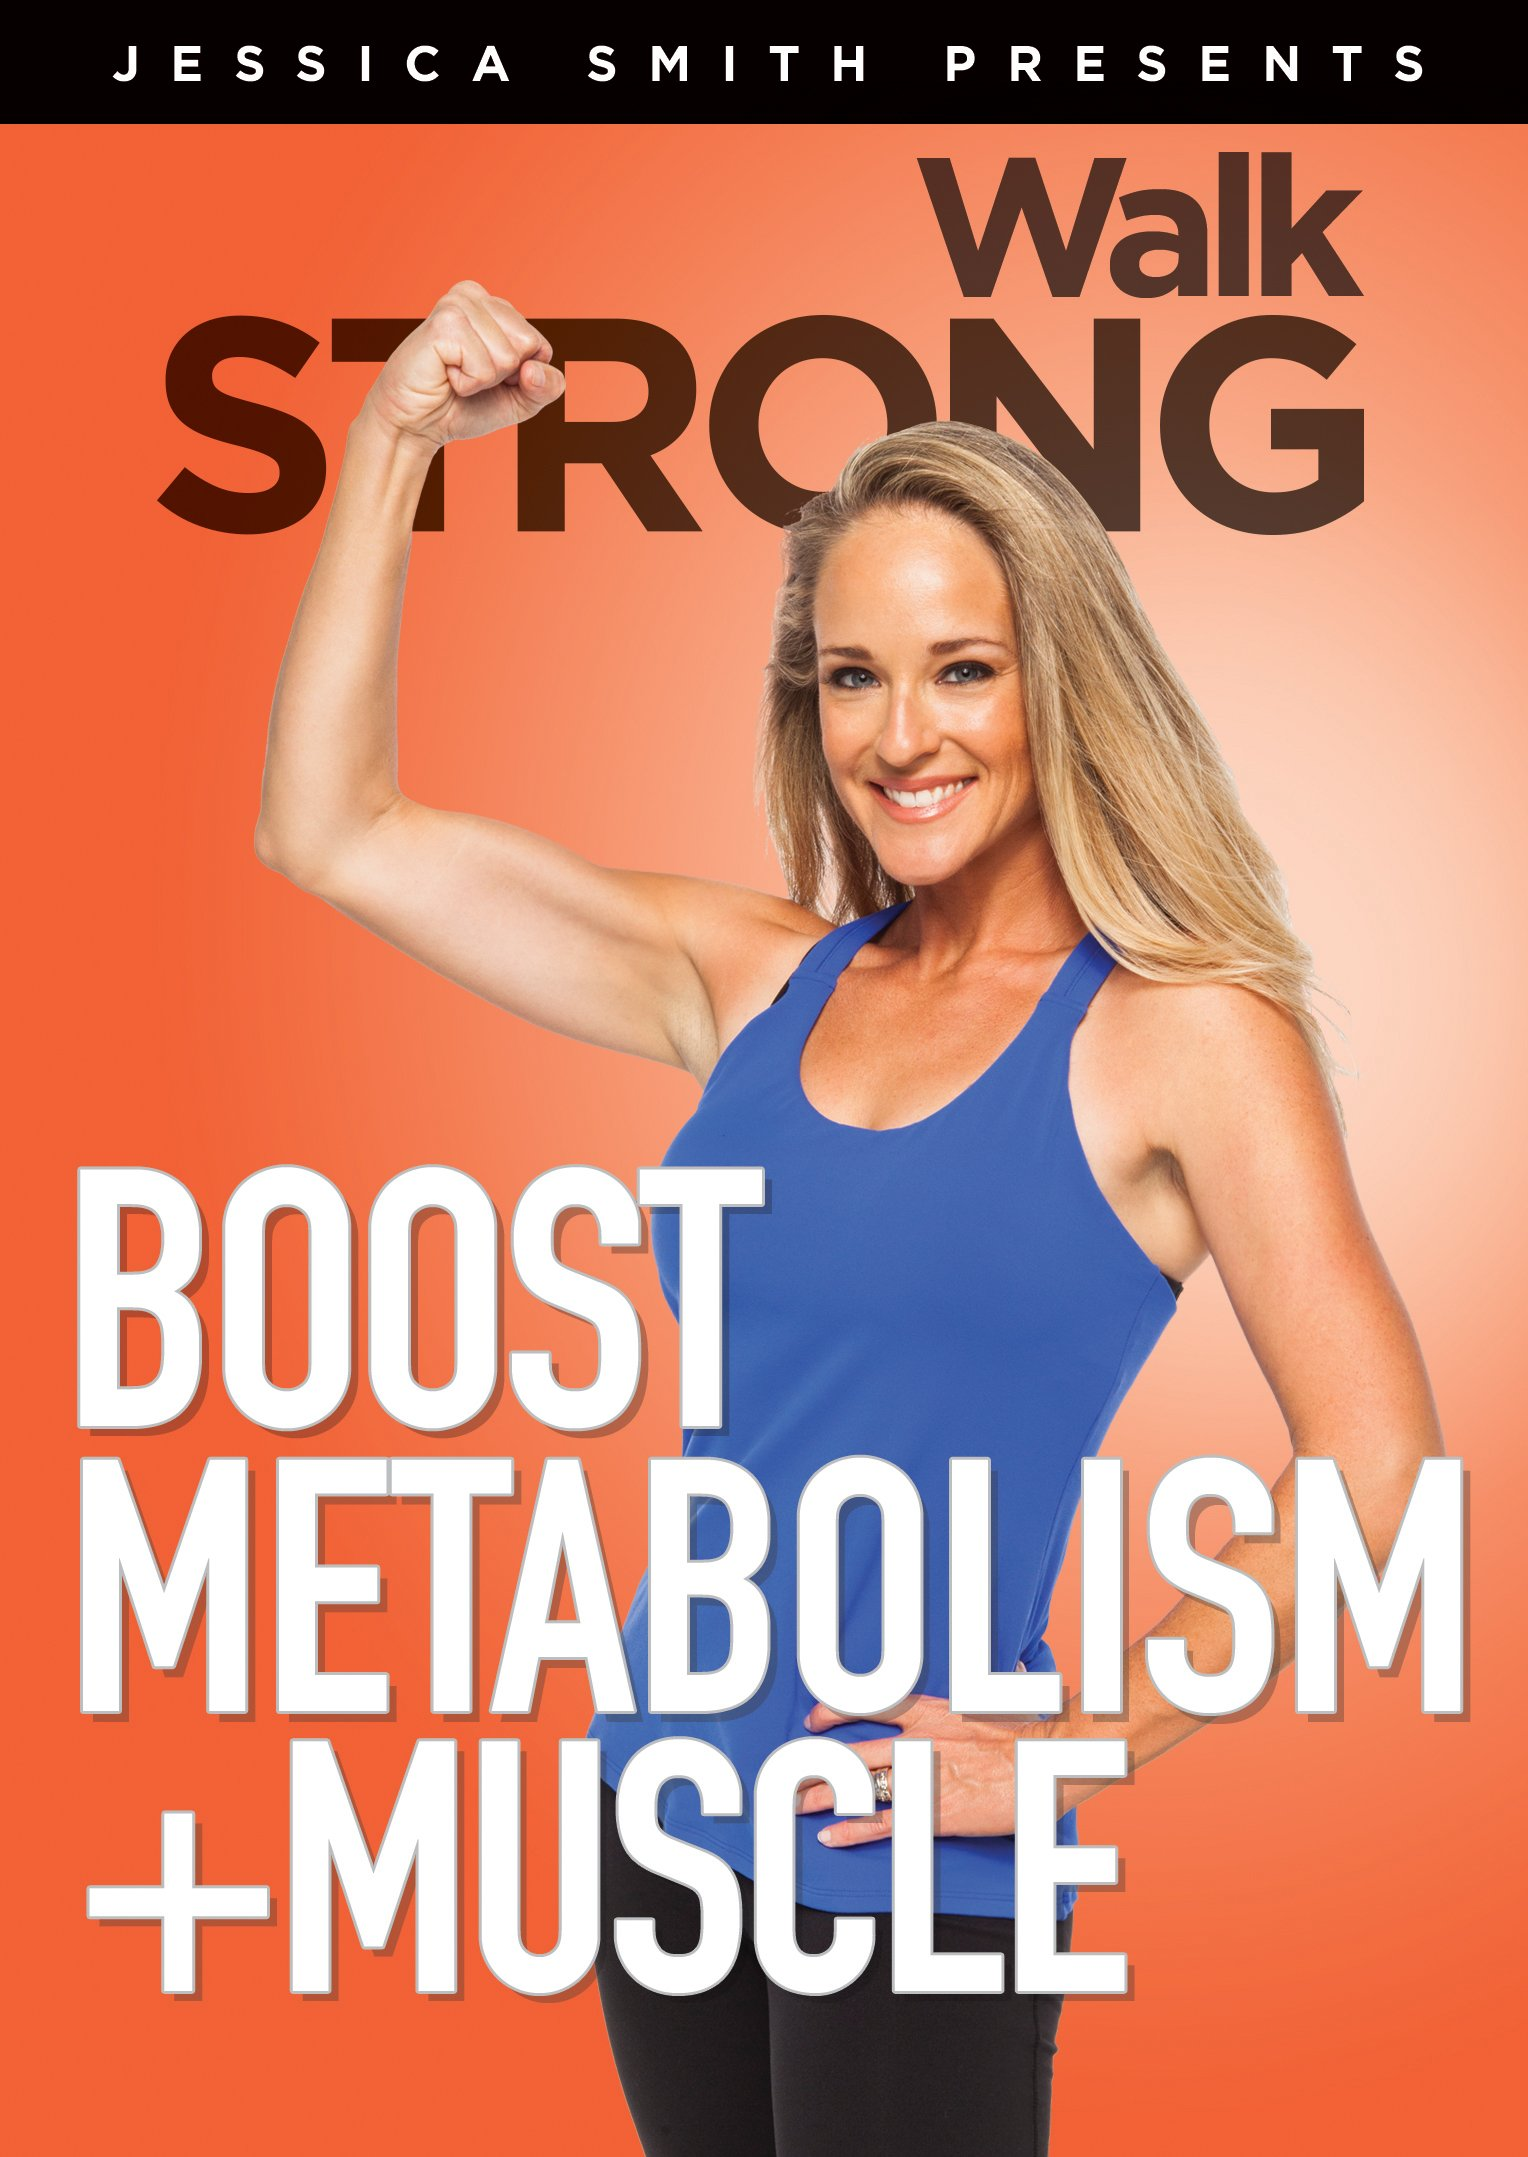 Boost Metabolism + Muscle! Strength Training for Women, Low Impact, High Results Home Exercise Video, Walk STRONG 2.0